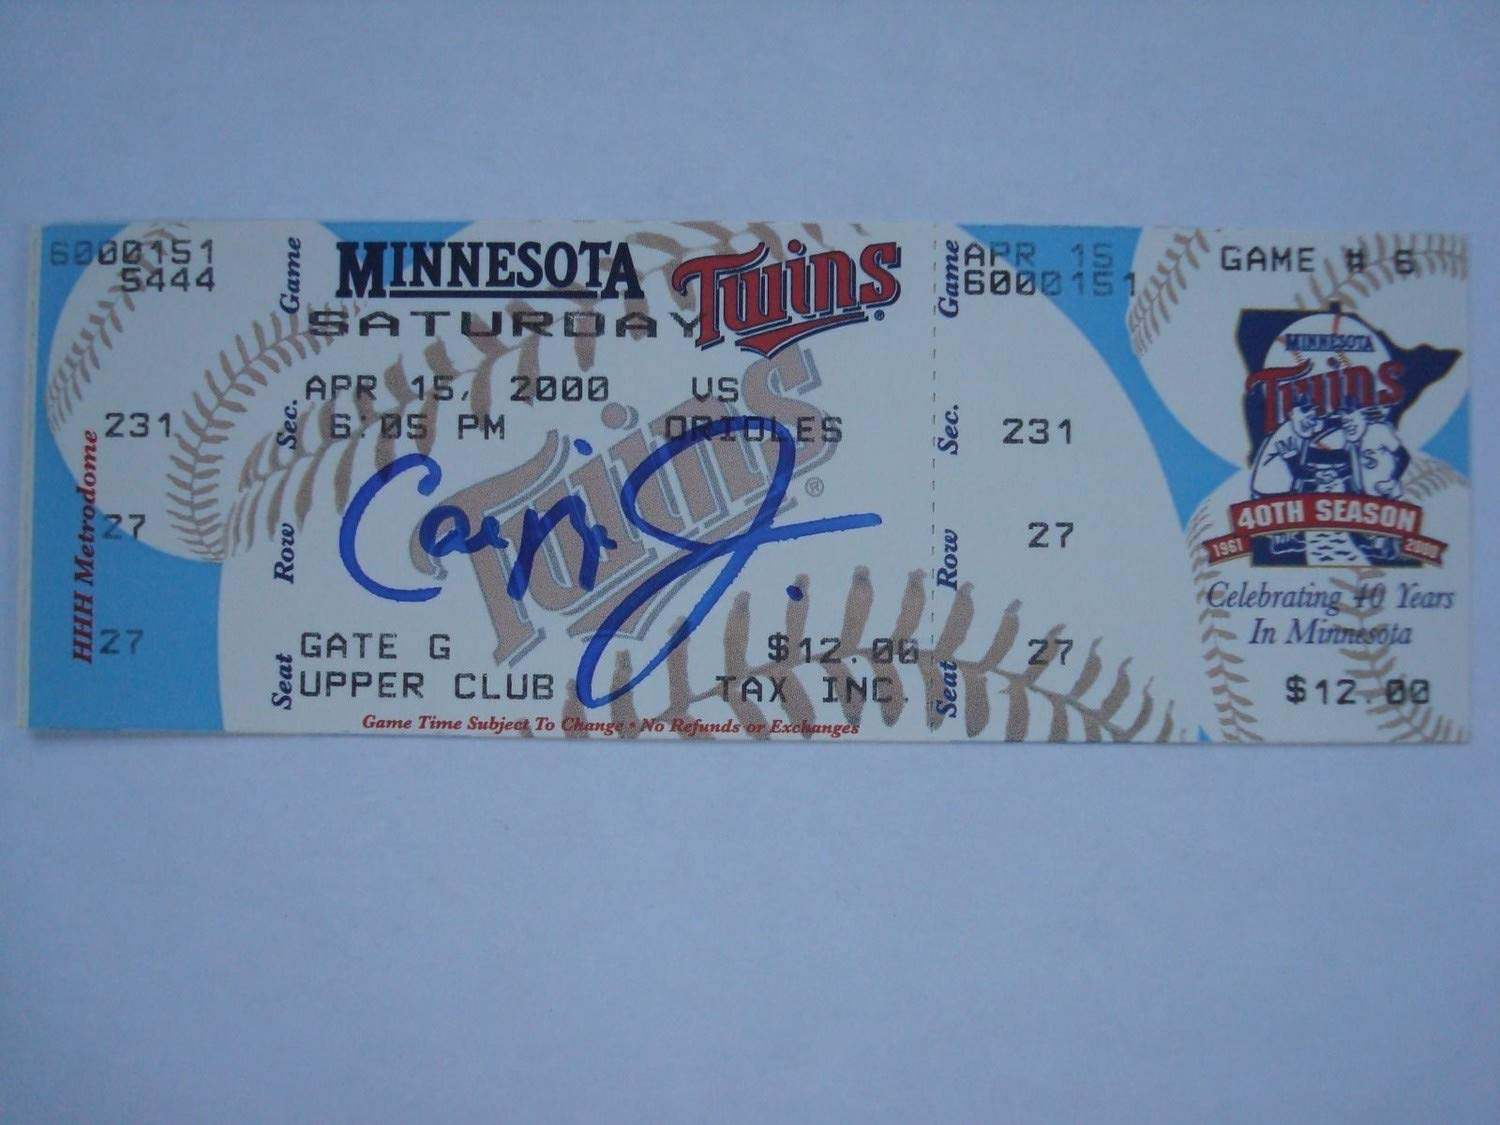 Cal Ripken Jr 3000Th Hit Autographed Signed Autograph Ticket Sports Memorabilia JSA Certificate of Authentic Memorabiliaity Included